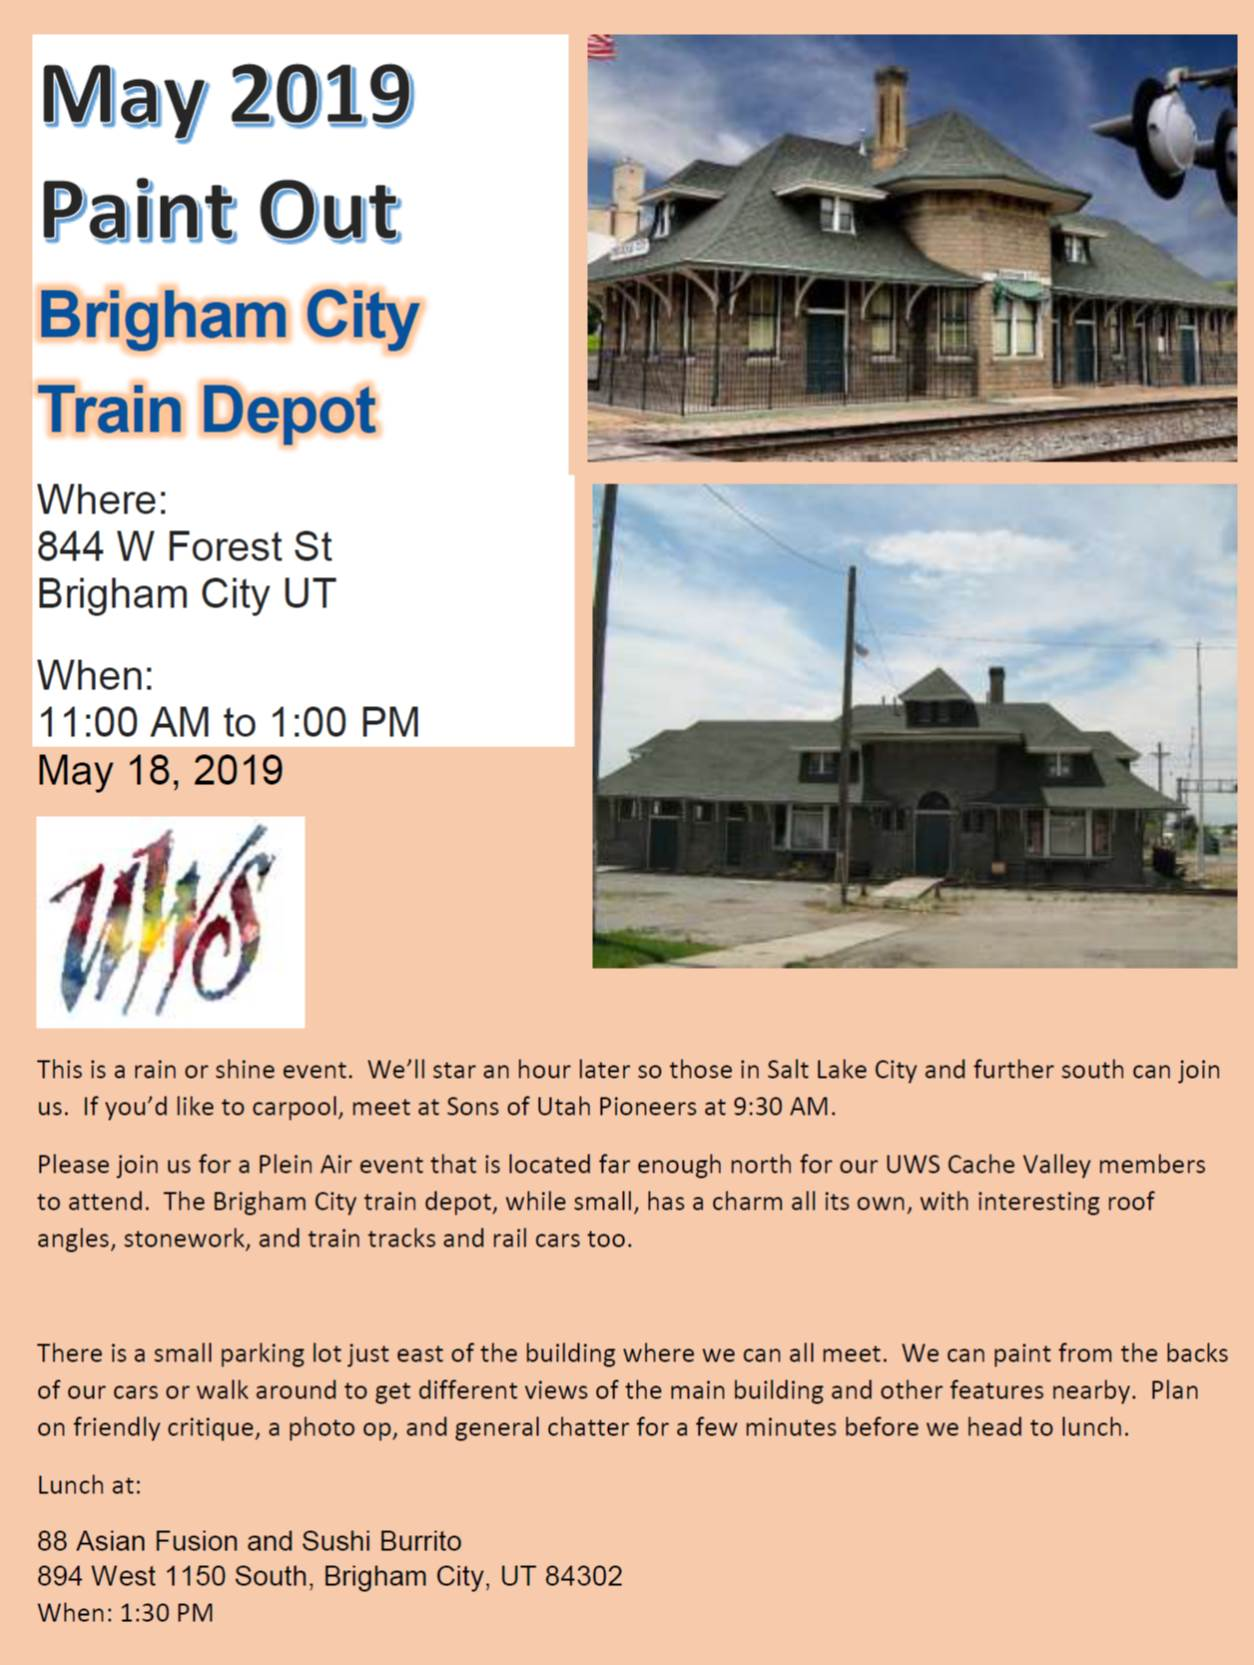 uws paint out_may 2019 brigham city train depot_pic